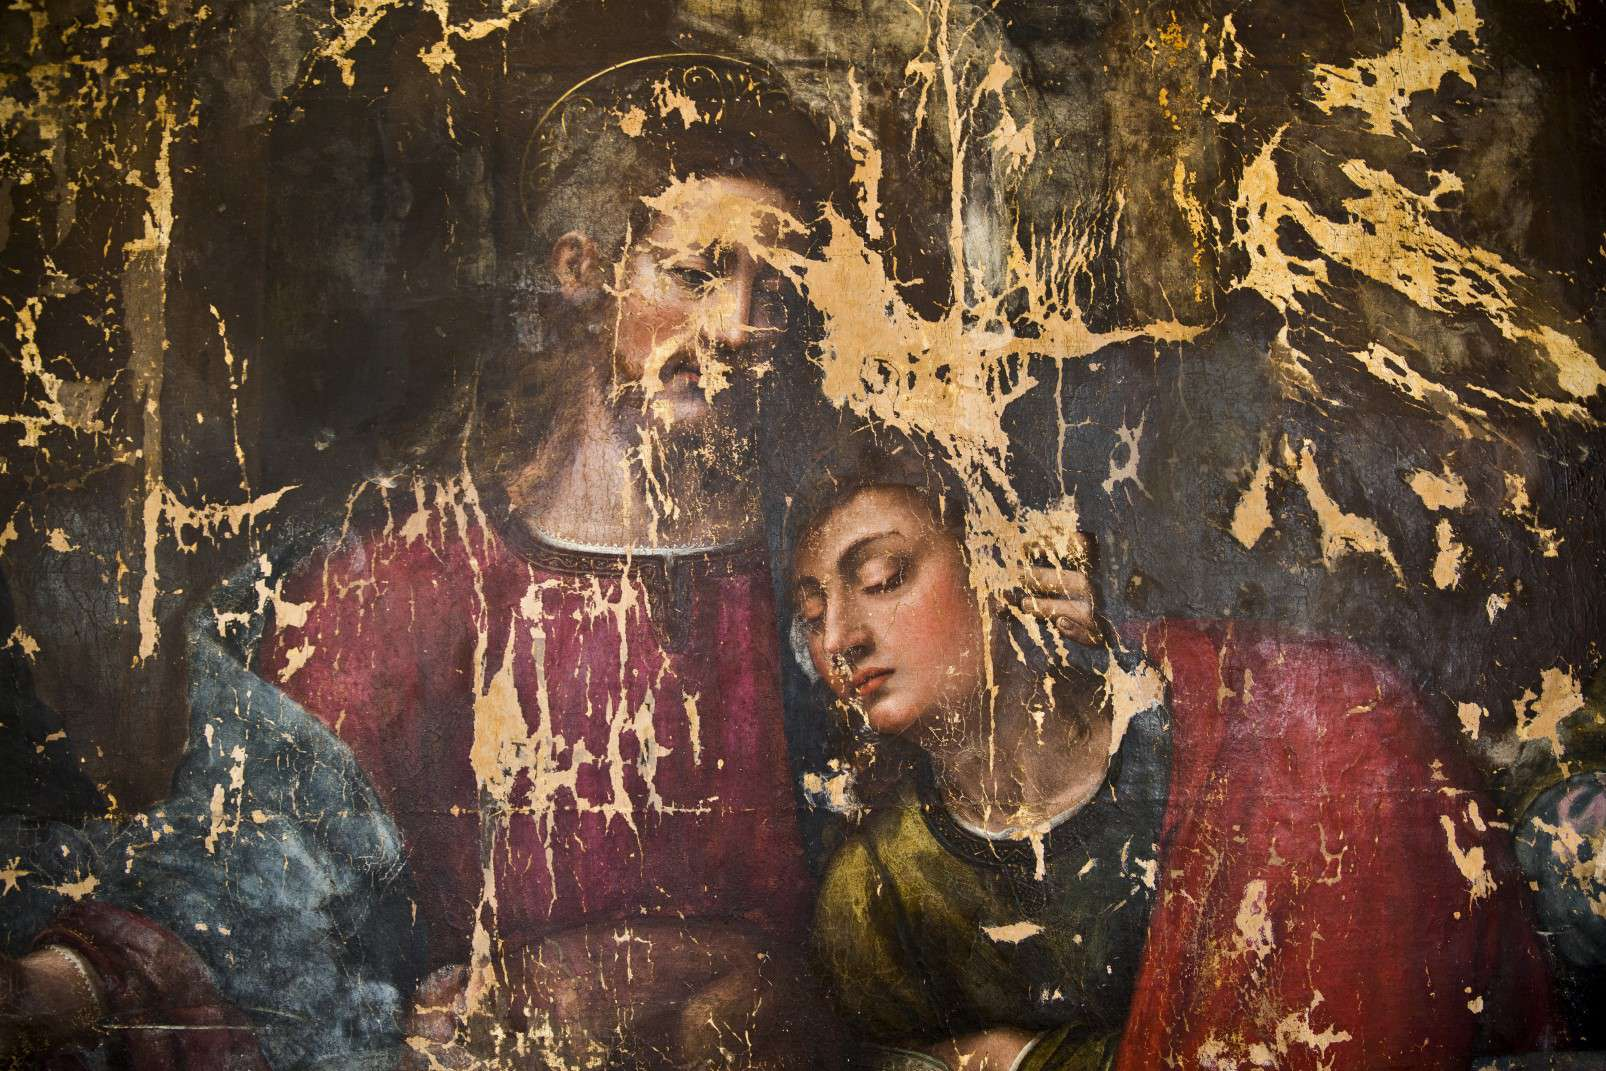 Adopt an Apostle - Detail of Christ and Saint John - Last Supper by Plautilla Nelli